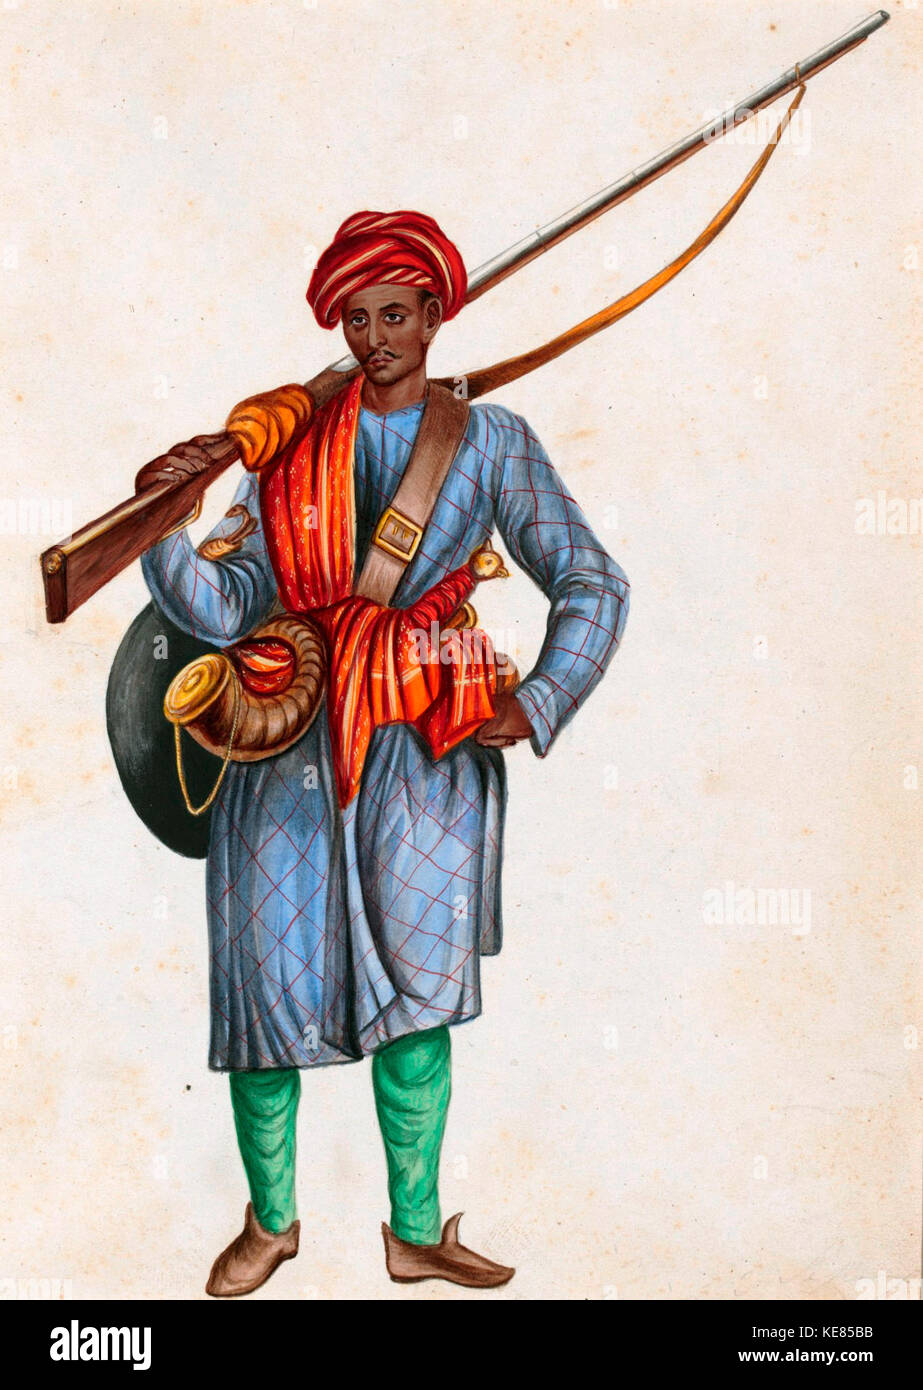 A painting of a Mughal Infantryman, circa 1850 - Stock Image